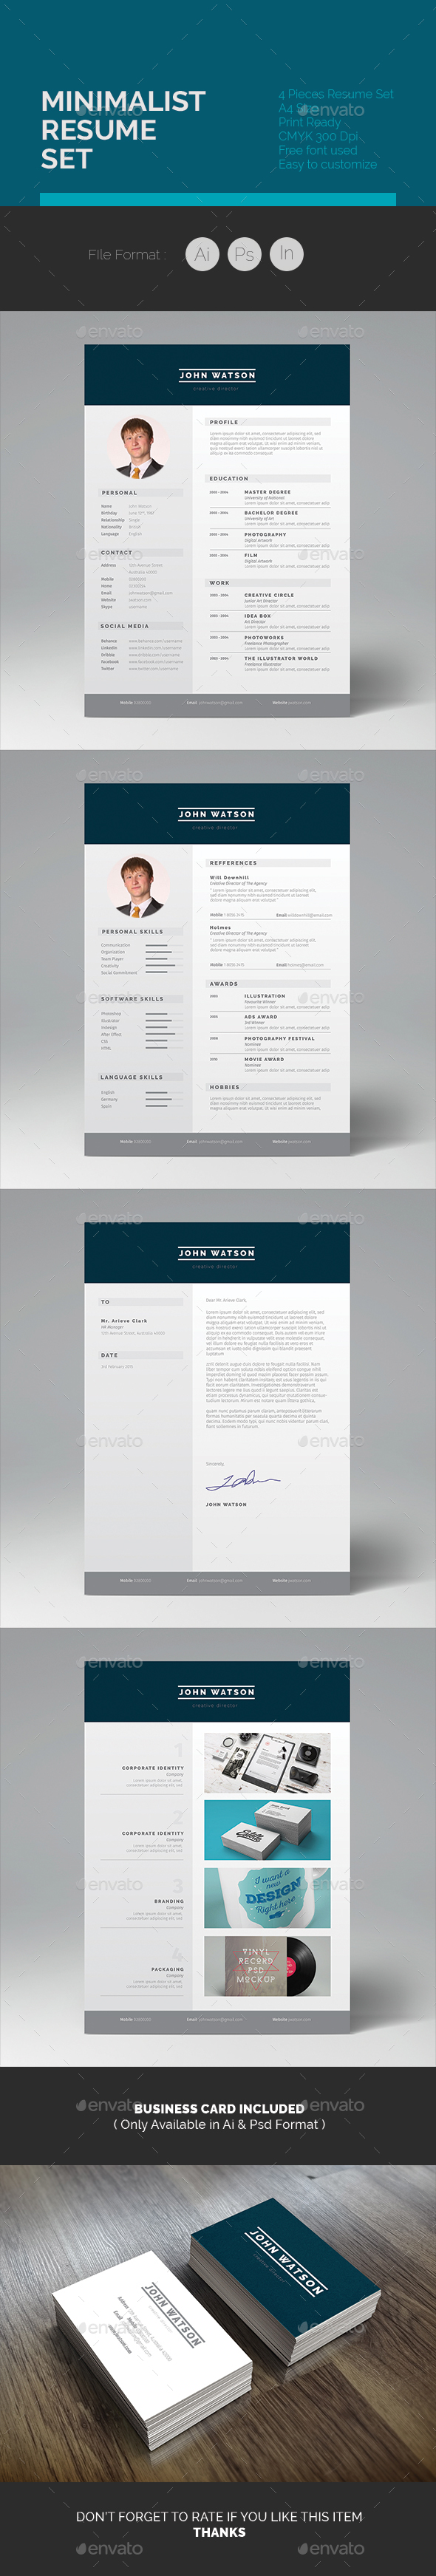 Minimalist Resume Set - Resumes Stationery